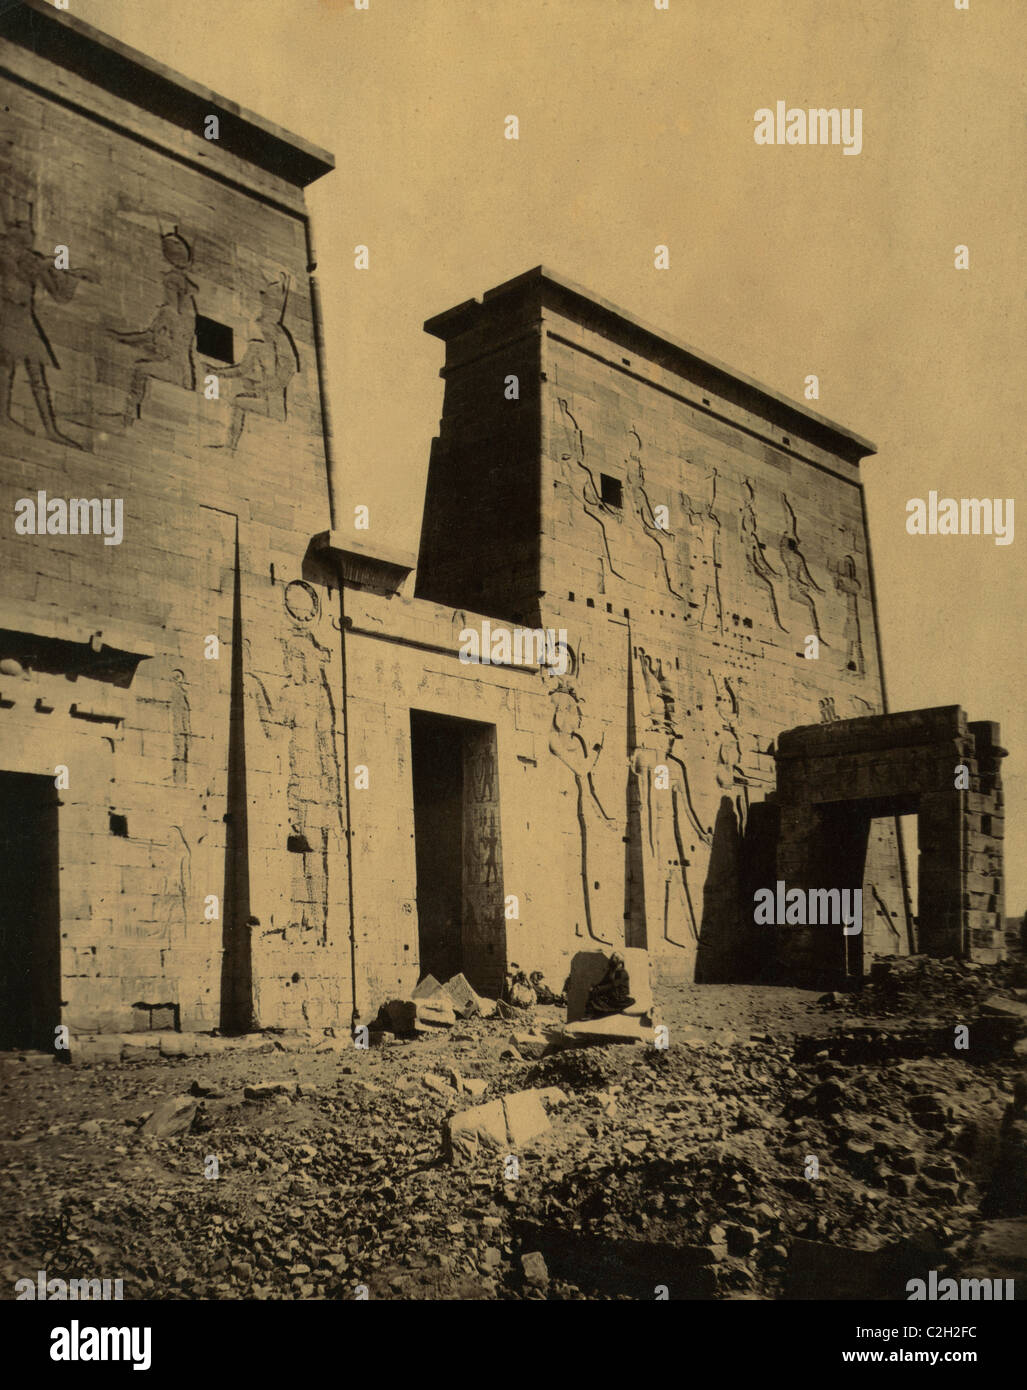 Temple of Isis on the Island of Philae, Egypt Stock Photo